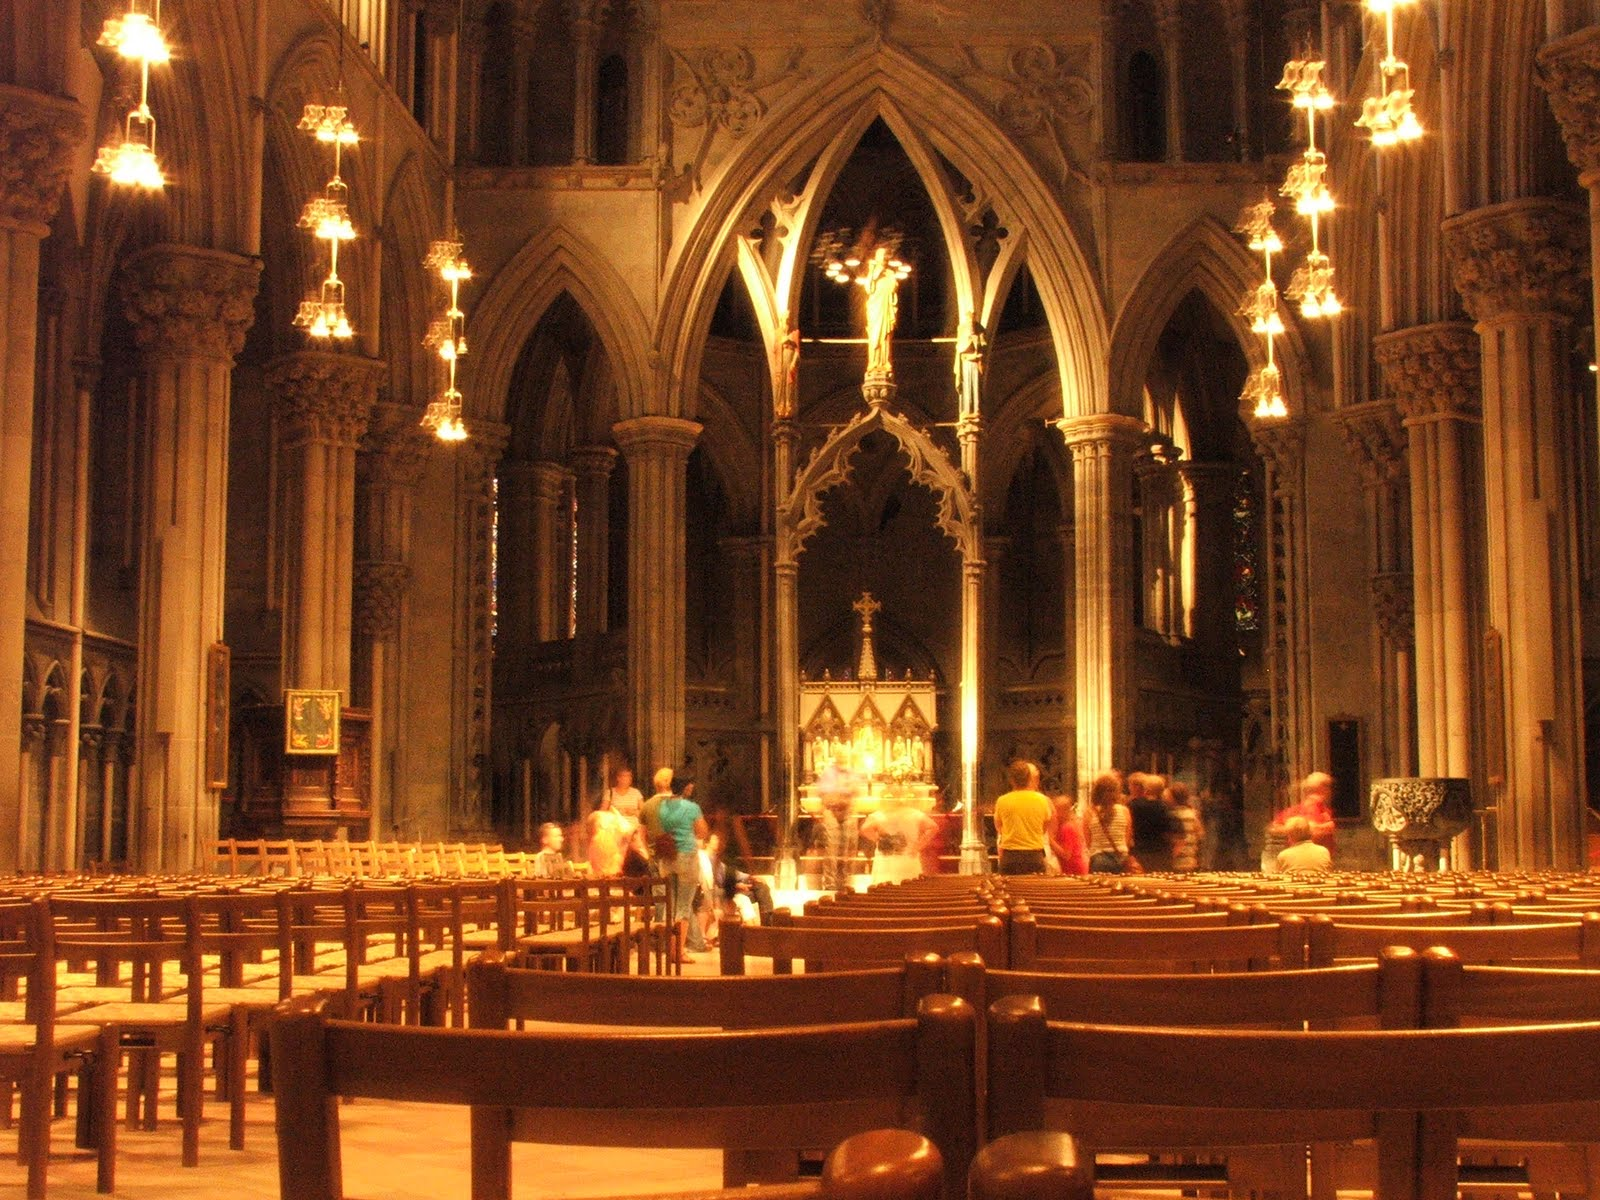 Nidaros Cathedral, Trondheim, Norway, Interior view